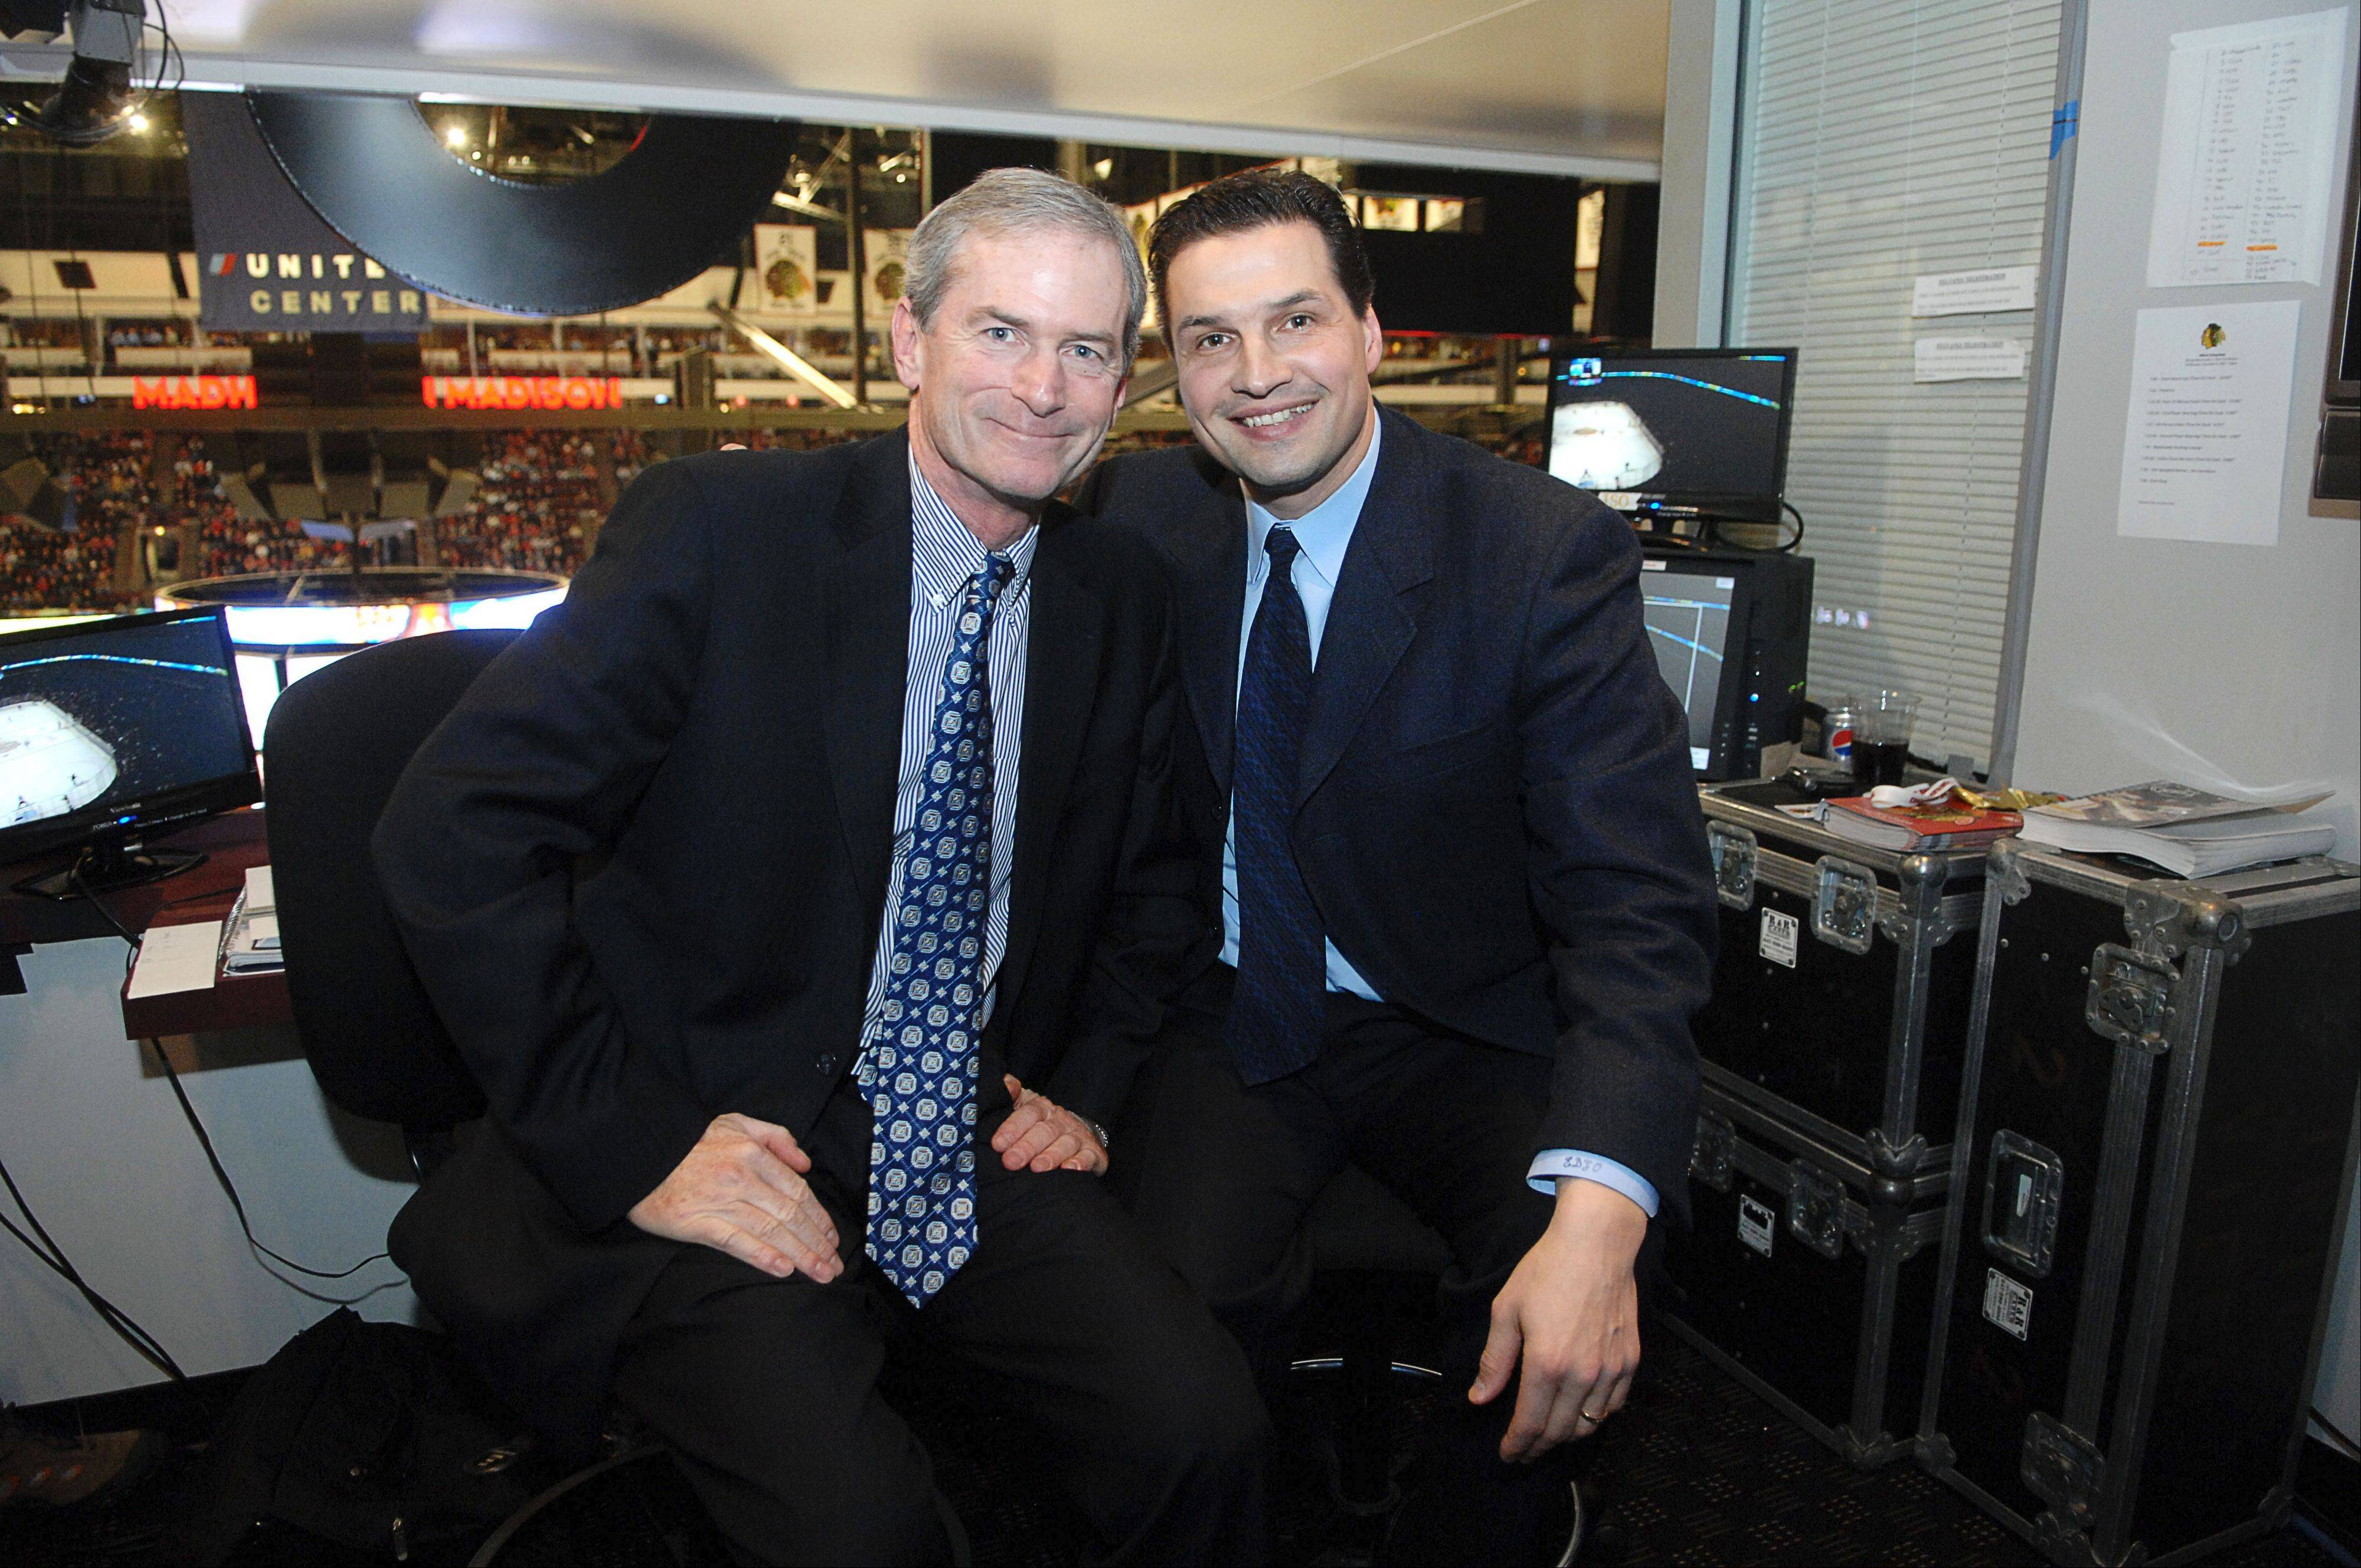 Pat Foley, left, and TV partner Eddie Olczyk form one of the best broadcast teams in the business.